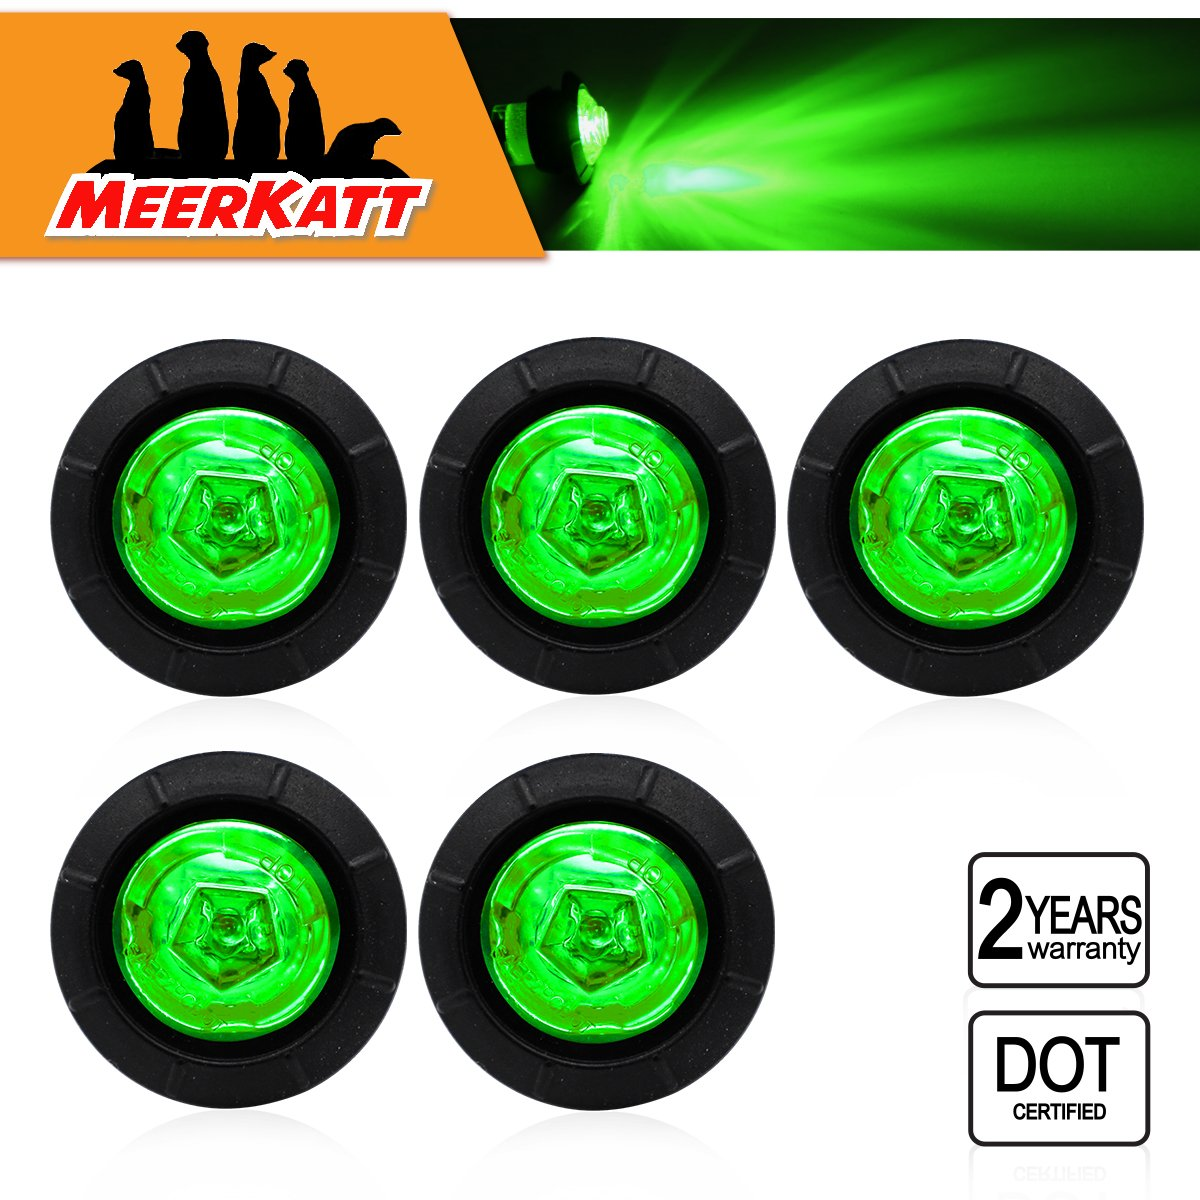 Meerkatt 3//4 inch Round White LED Clearance Side Marker Indicators Lights Universal Button Flush Mount Lamps Waterproof RV Marine Jeep Lorry Truck Trailer 12V DC include Rubber Grommets Pack of 5